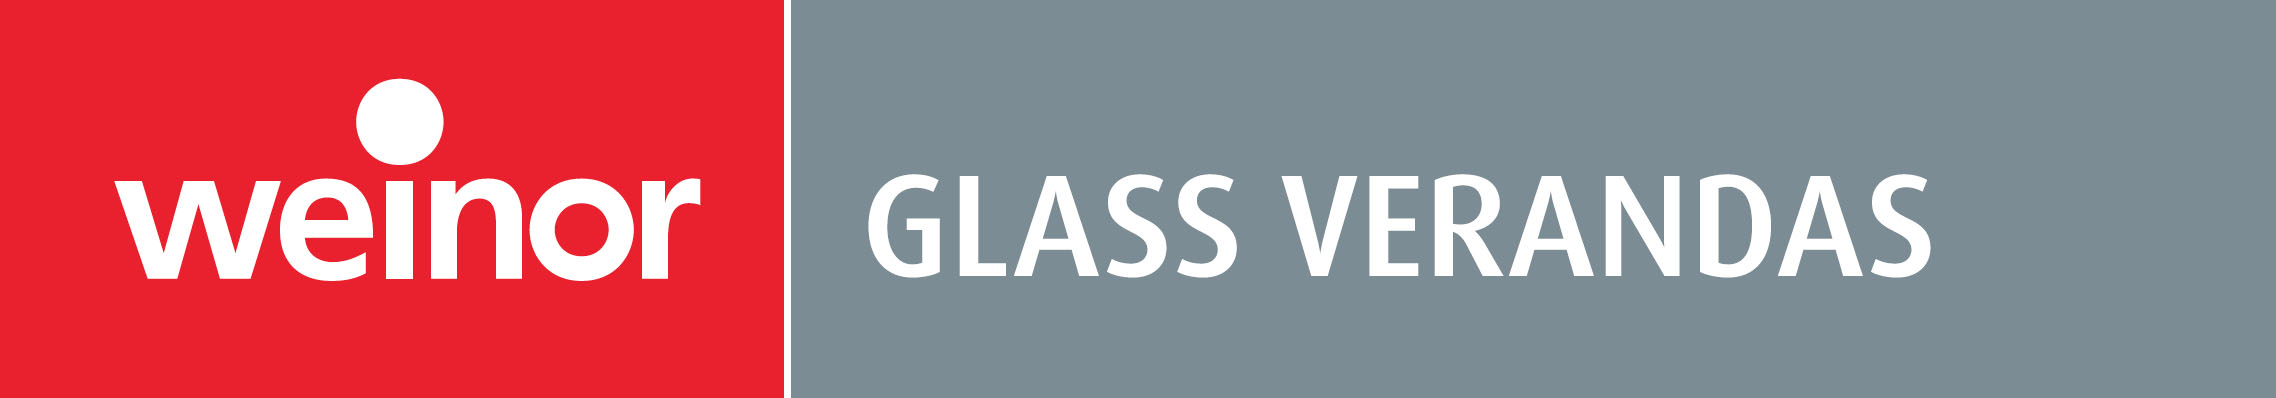 Weinor Glass Verandas Logo